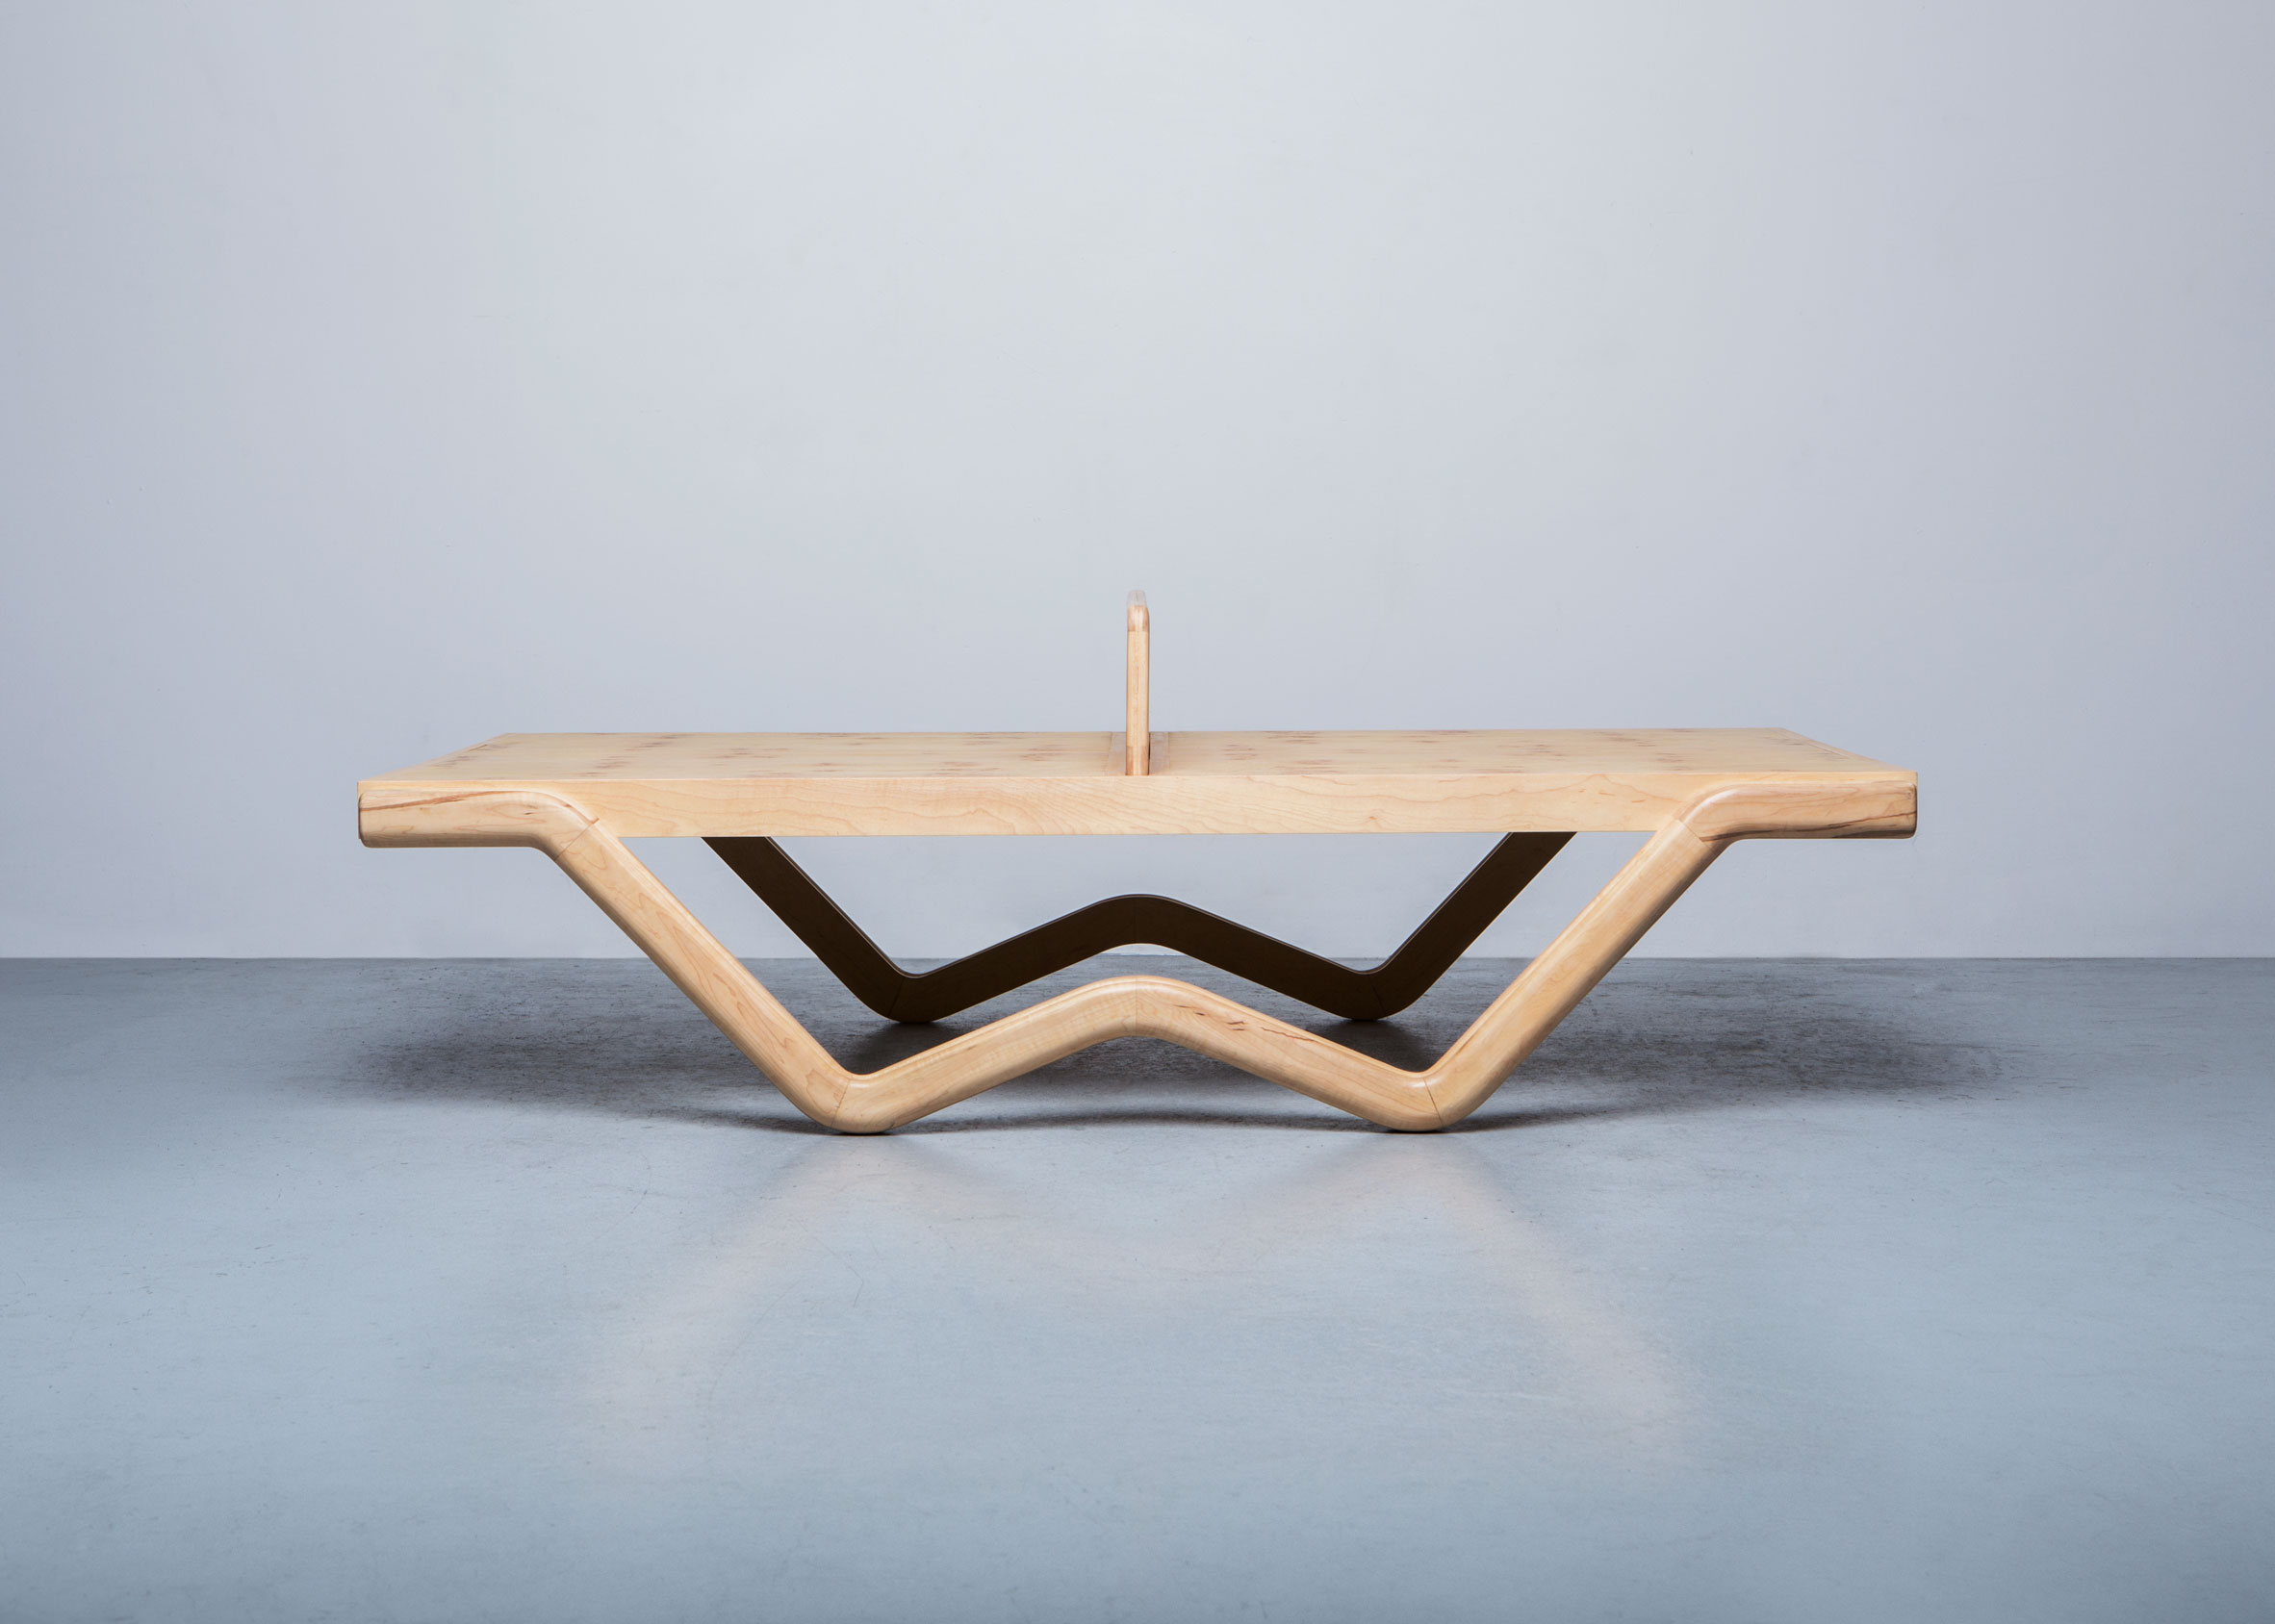 Tina Burner ping-pong table by Louie George Michael